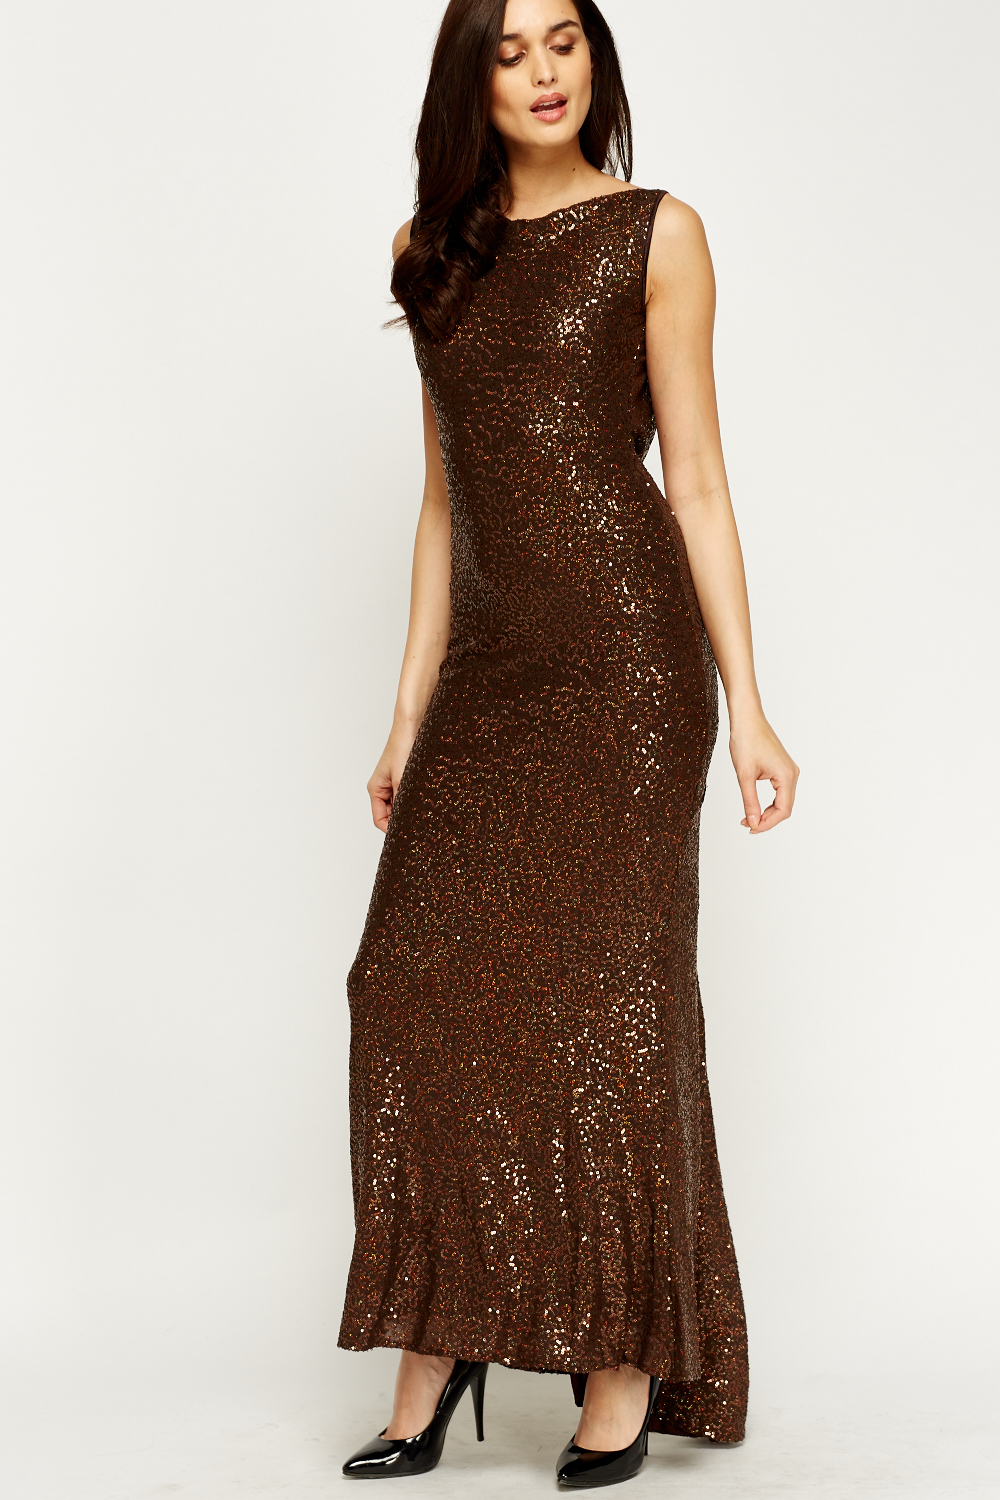 acbcaaa6121 Chocolate Sequin Drop Back Maxi Dress - Just £5